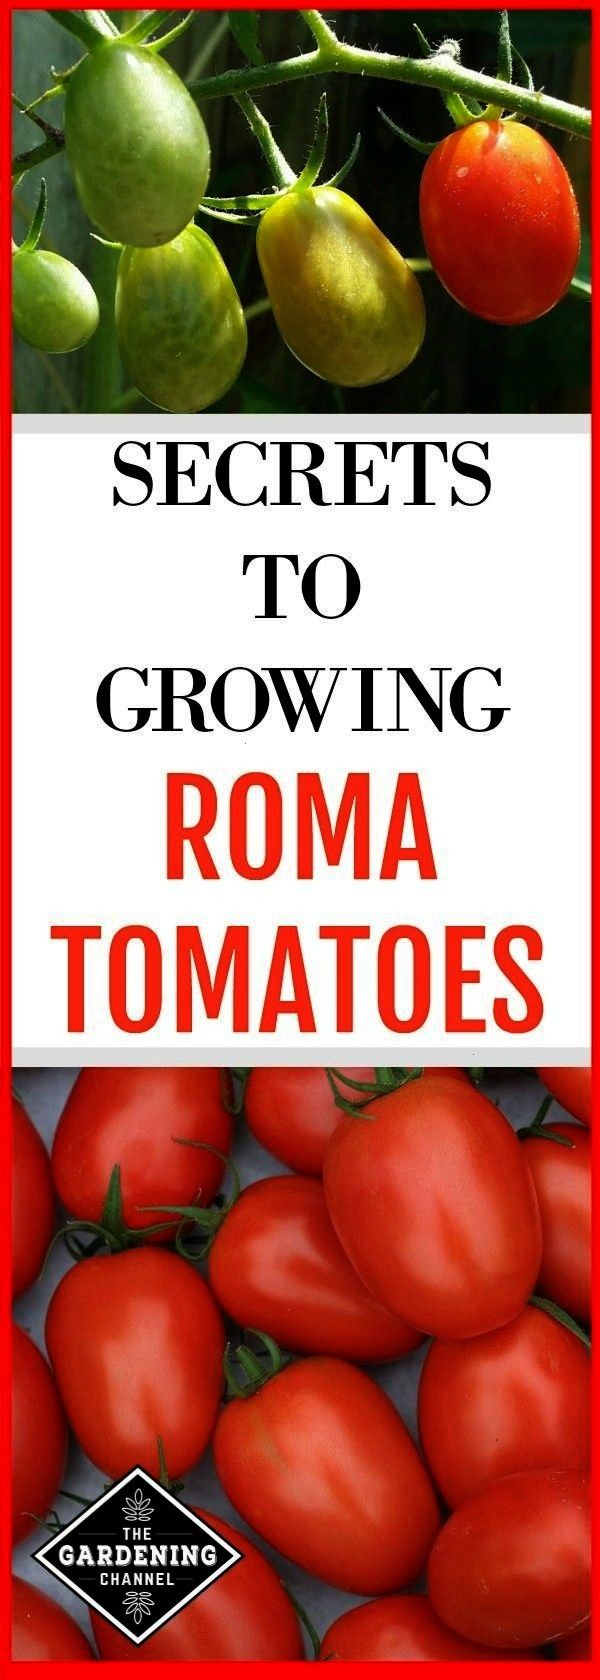 growing in the garden and roma tomato harvest with text overlay secrets to growing roma tomatoesroma tomatoes growing in the garden and roma tomato harvest with text over...